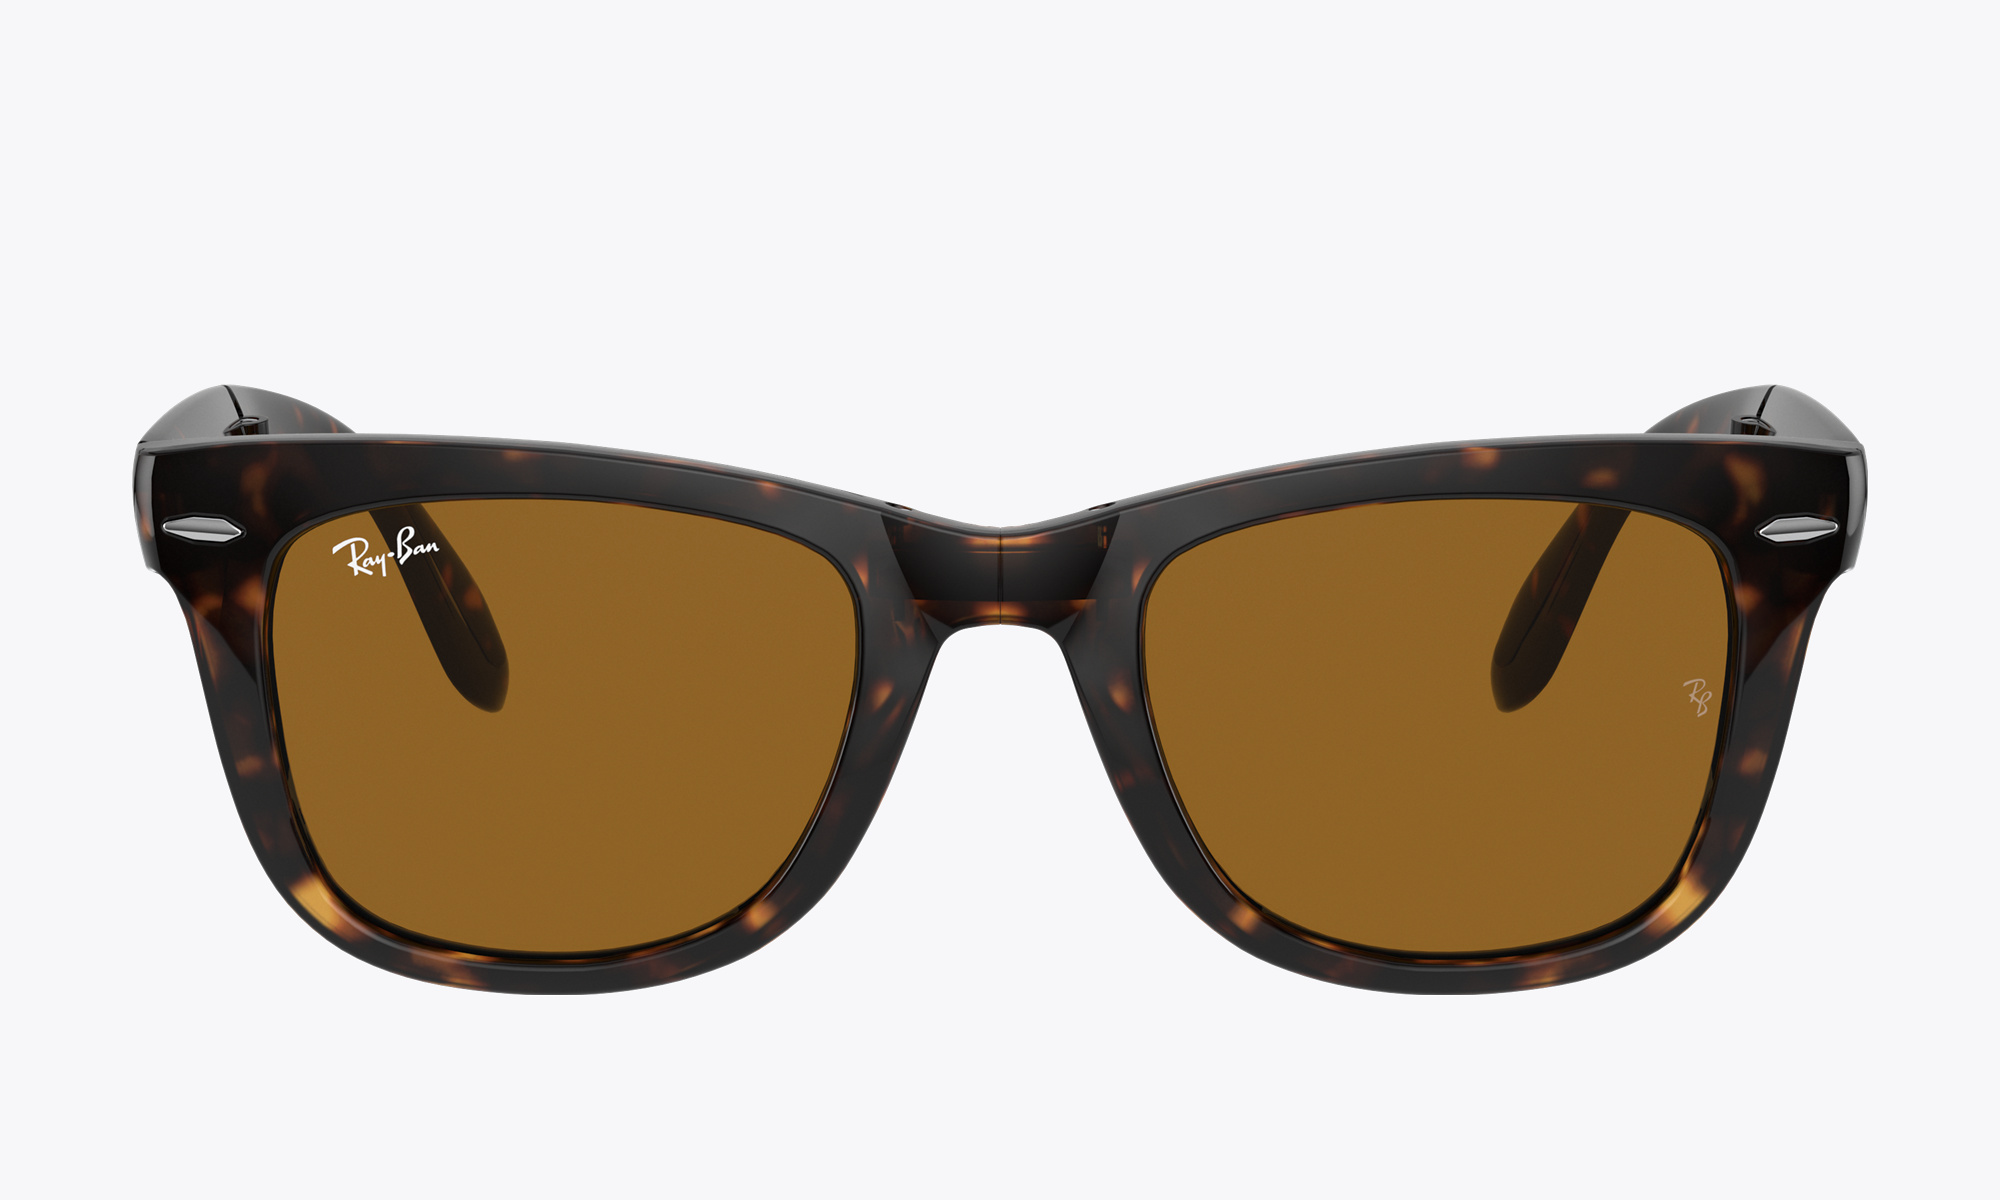 Image of Ray-Ban RB4105 color Tortoise